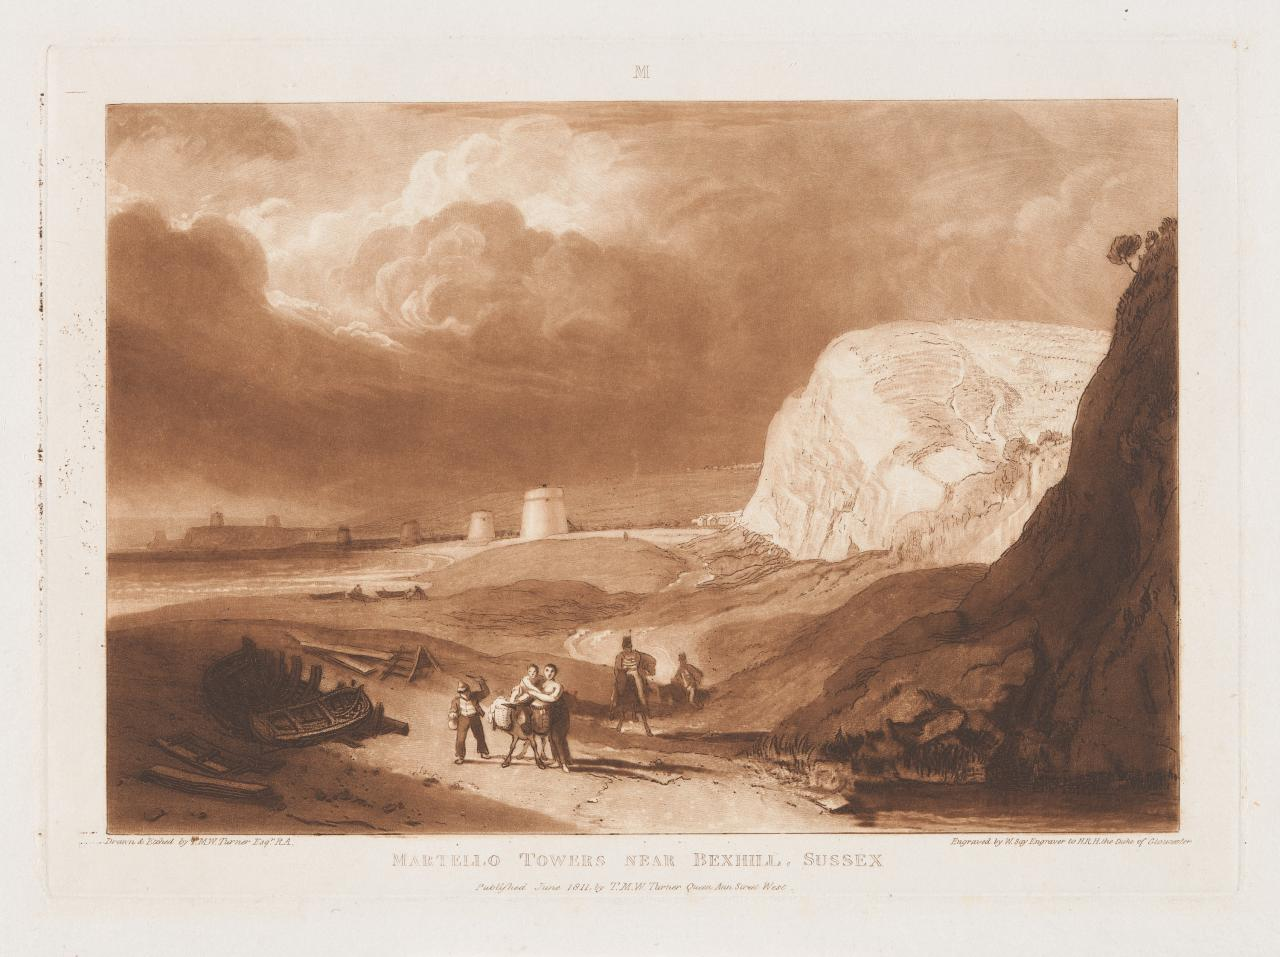 Martello Towers near Bexhill,Sussex (Liber Studiorum)